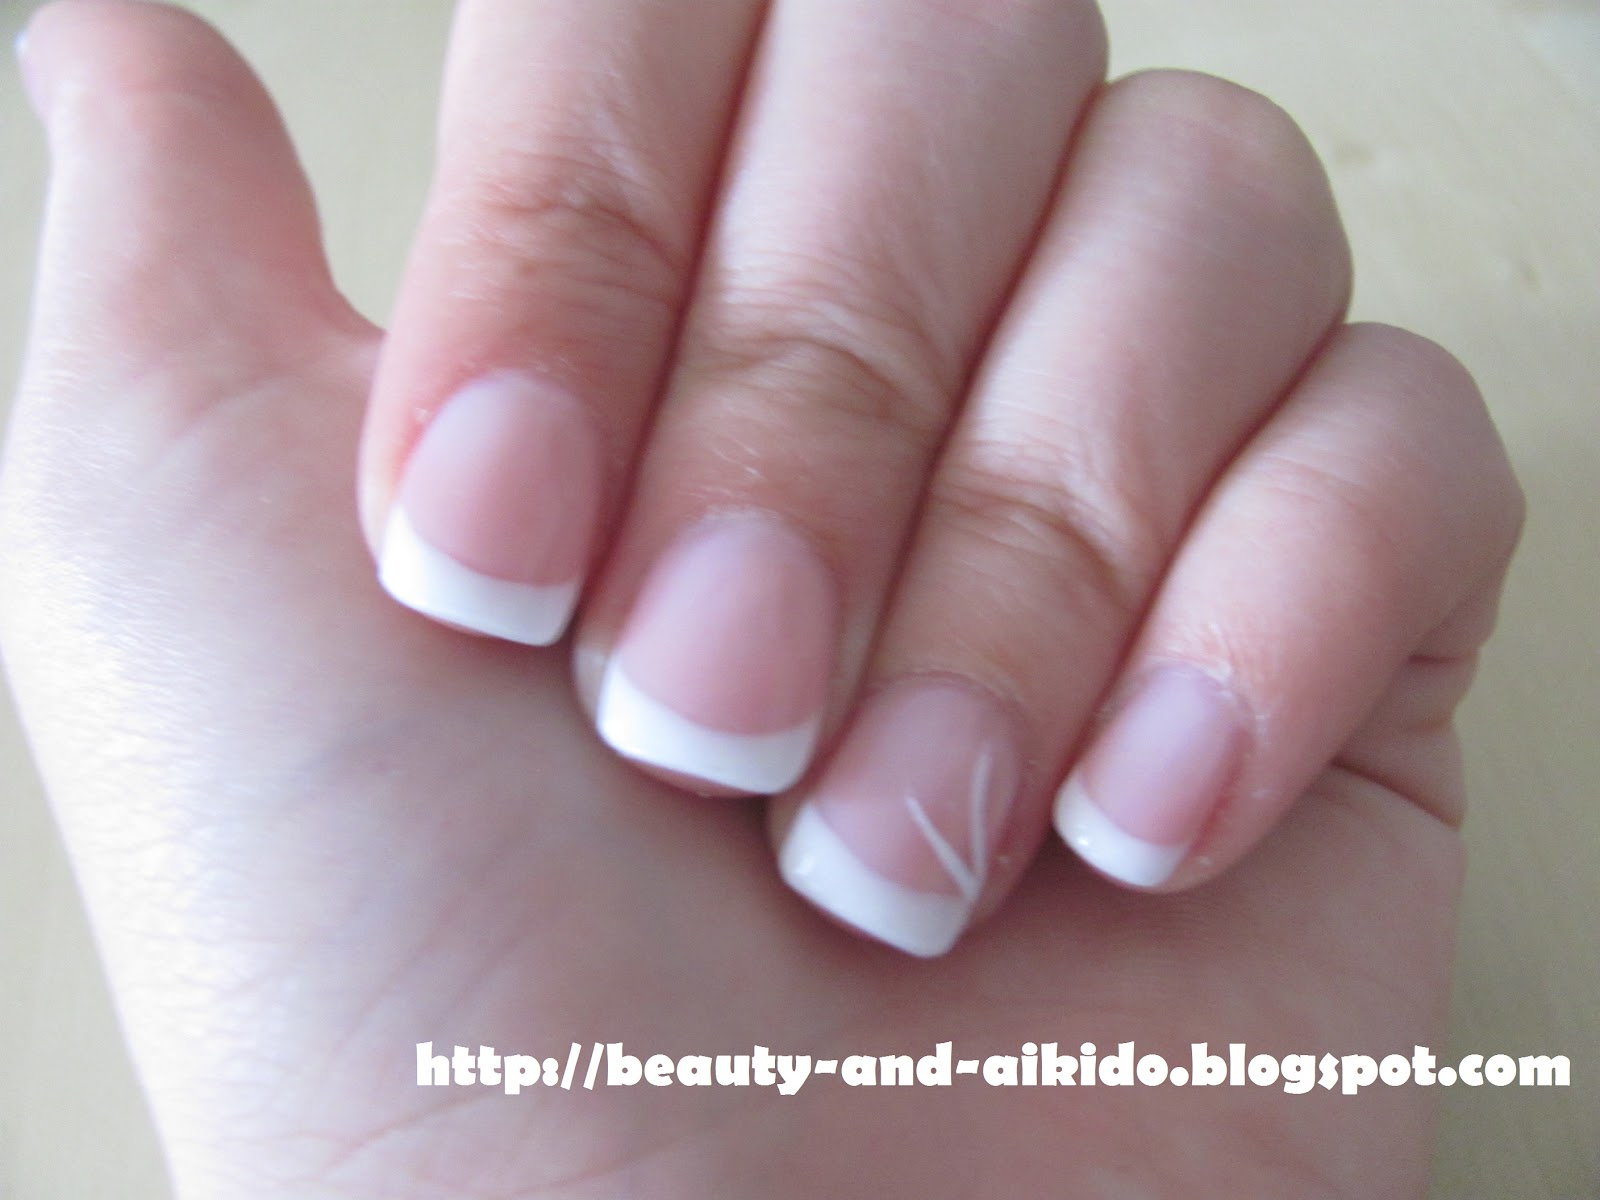 French manicure gel nails expression nails french manicure gel nails photo 2 solutioingenieria Gallery